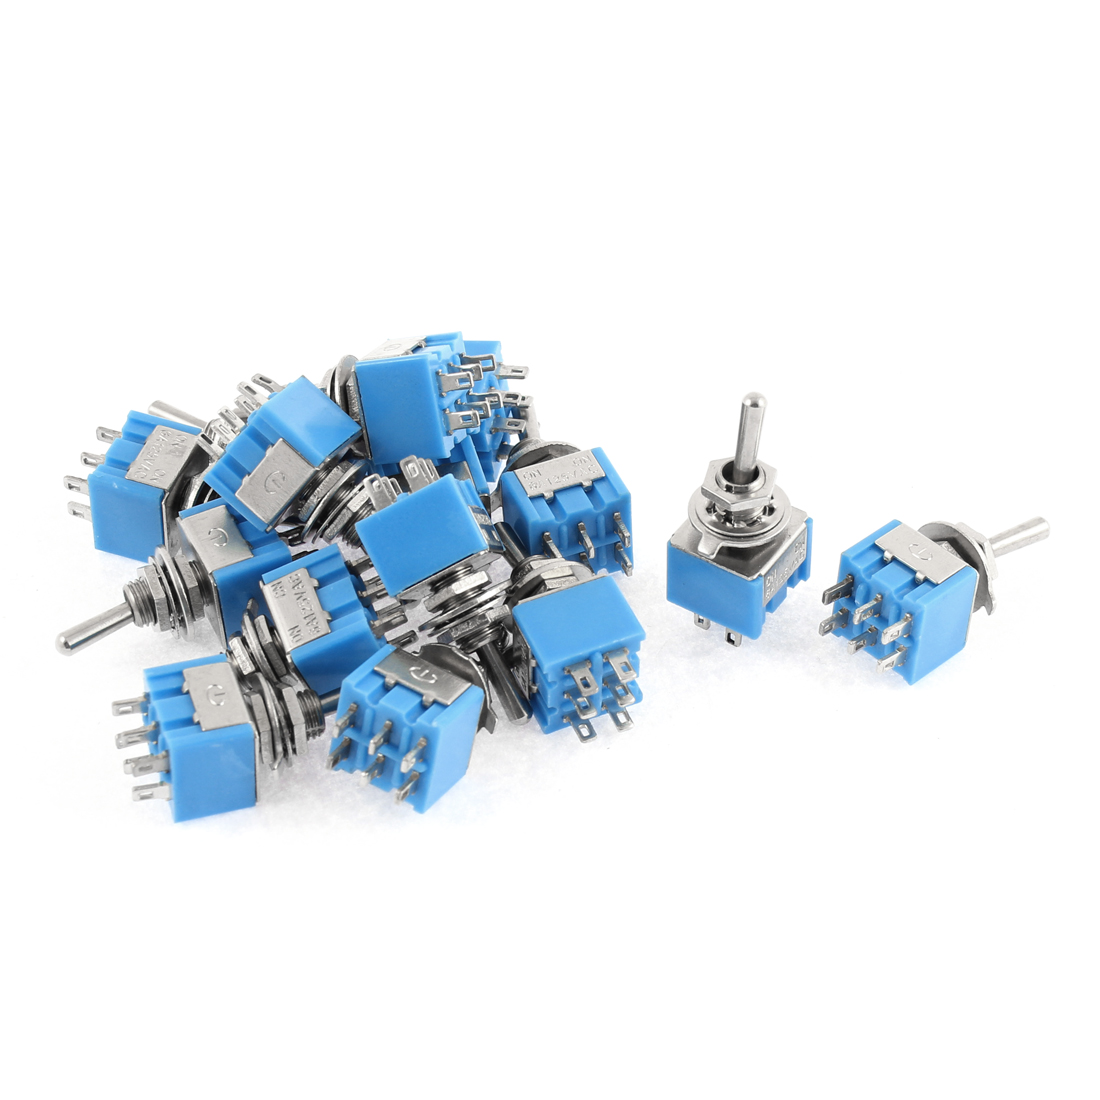 15pcs AC 125V 6A 6Pin 2 Positions ON-OFF 6mm Thread DPDT Latching Mini Toggle Switch Blue